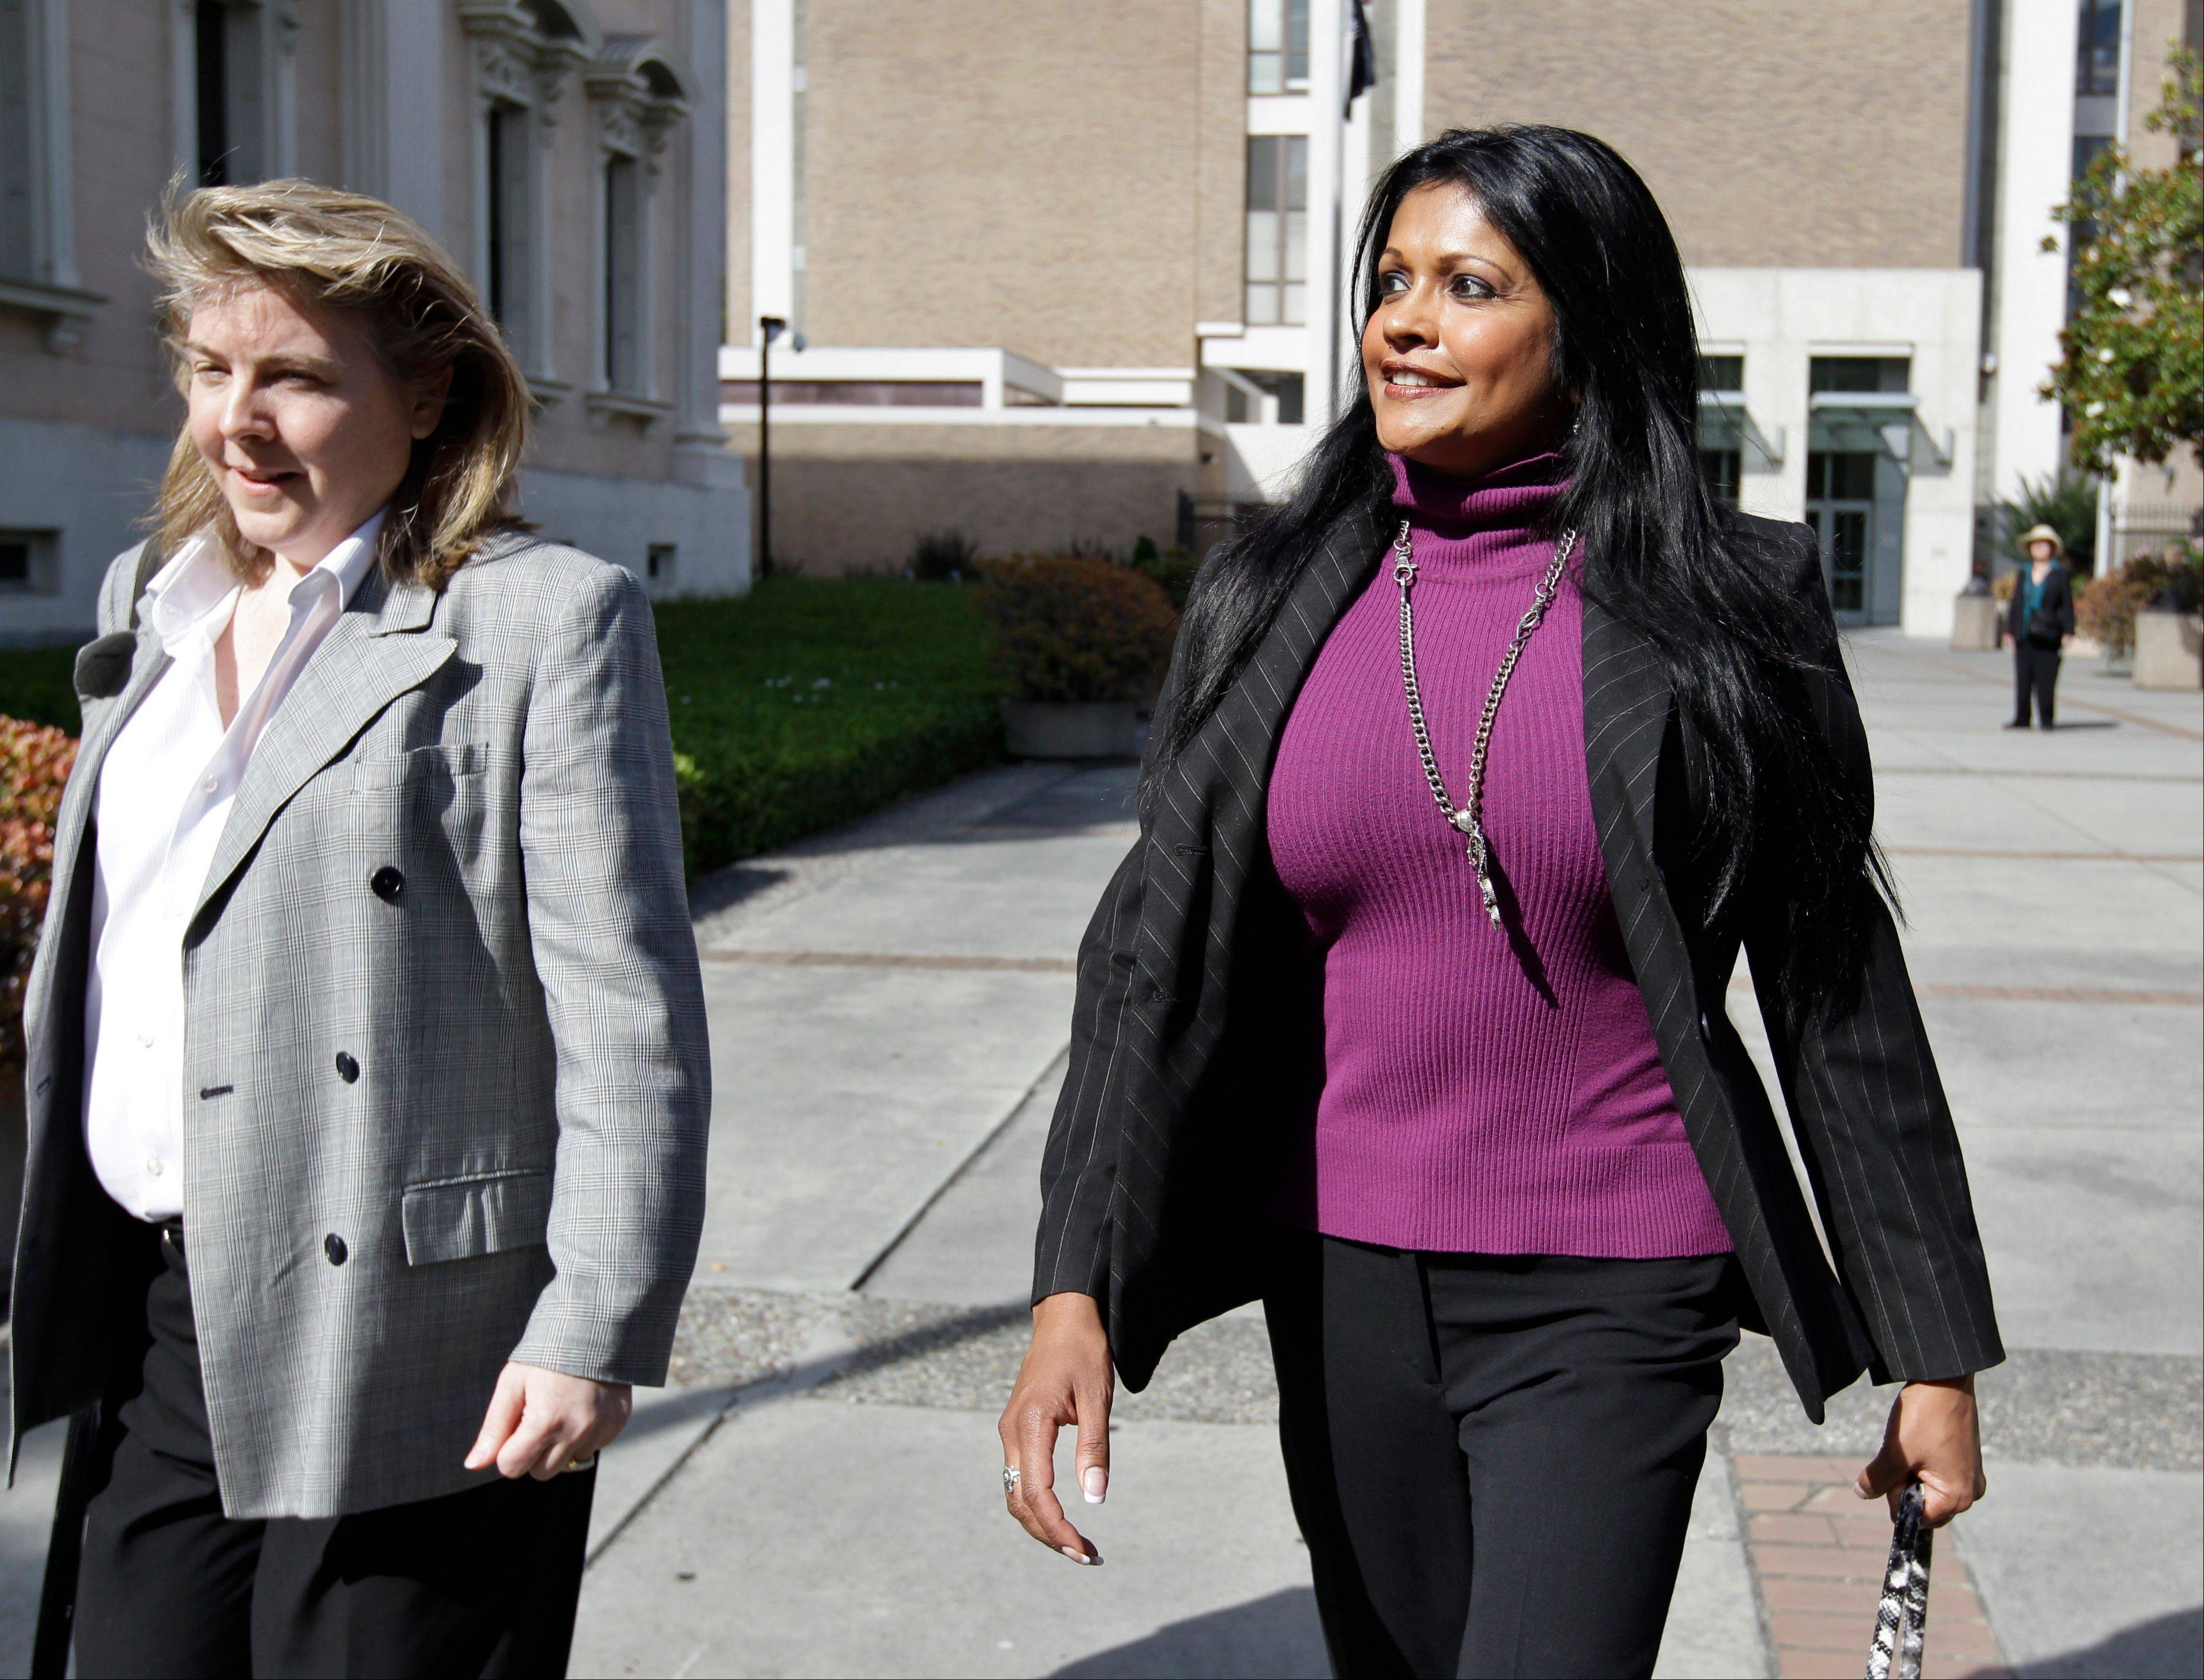 Amy Pinto-Walsh, right, girlfriend of artist Thomas Kinkade, leaves with her attorney, Sonia Agee, left, from a San Jose, Calif., courthouse in San Jose, Calif., Monday.